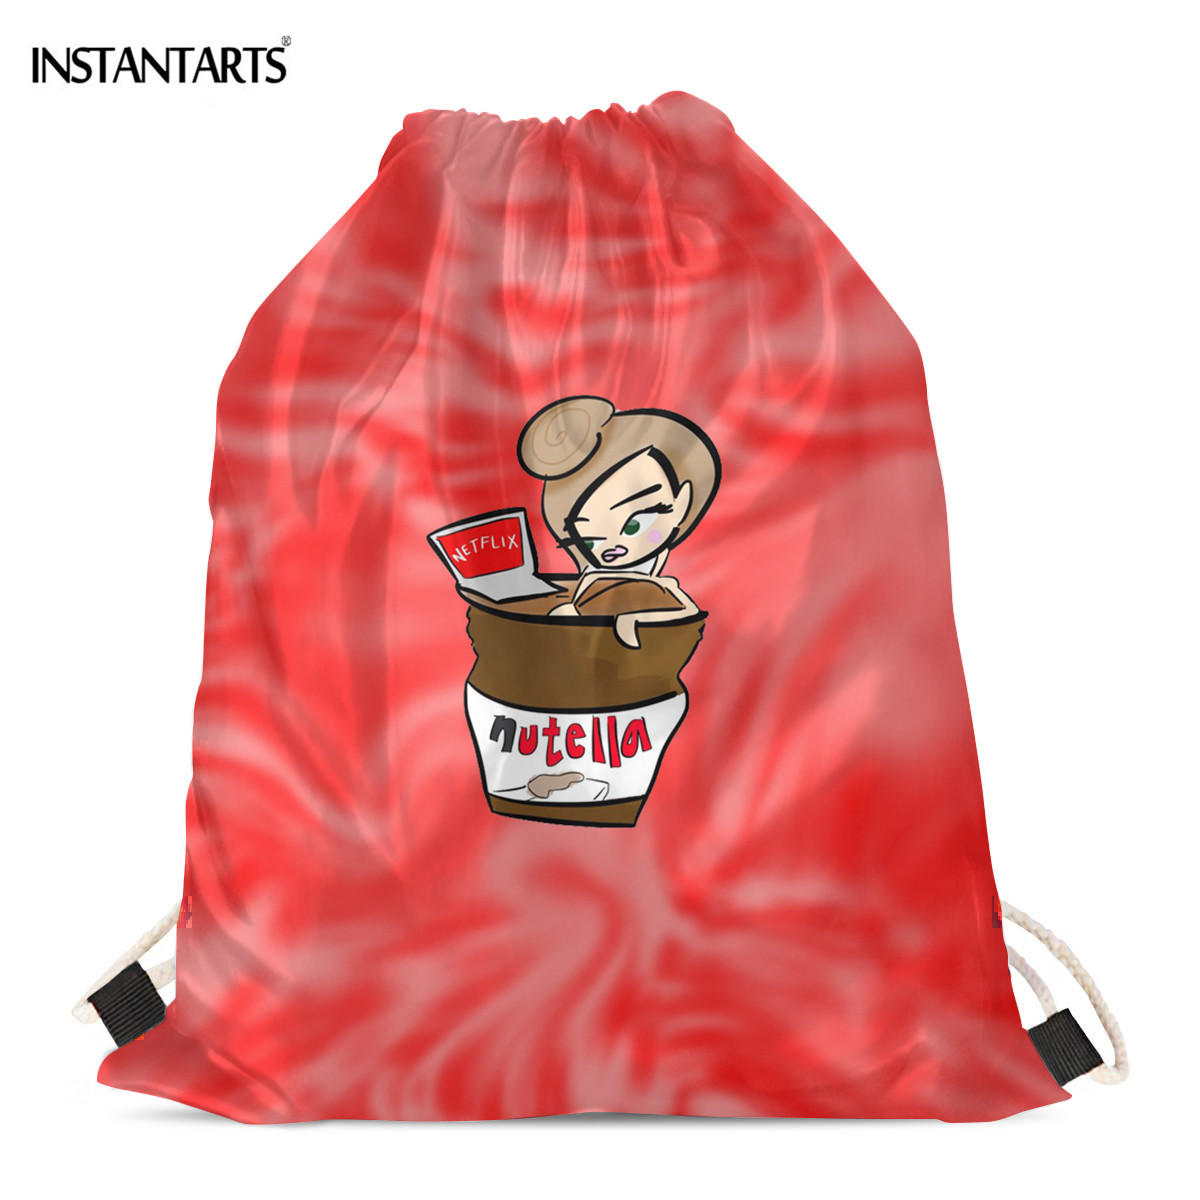 INSTANTARTS Cartoon Funny Nutella Women Print Drawstrings Bag Light Weight Shopping Bags Girls Casual Shoulder Backpack Gymsack